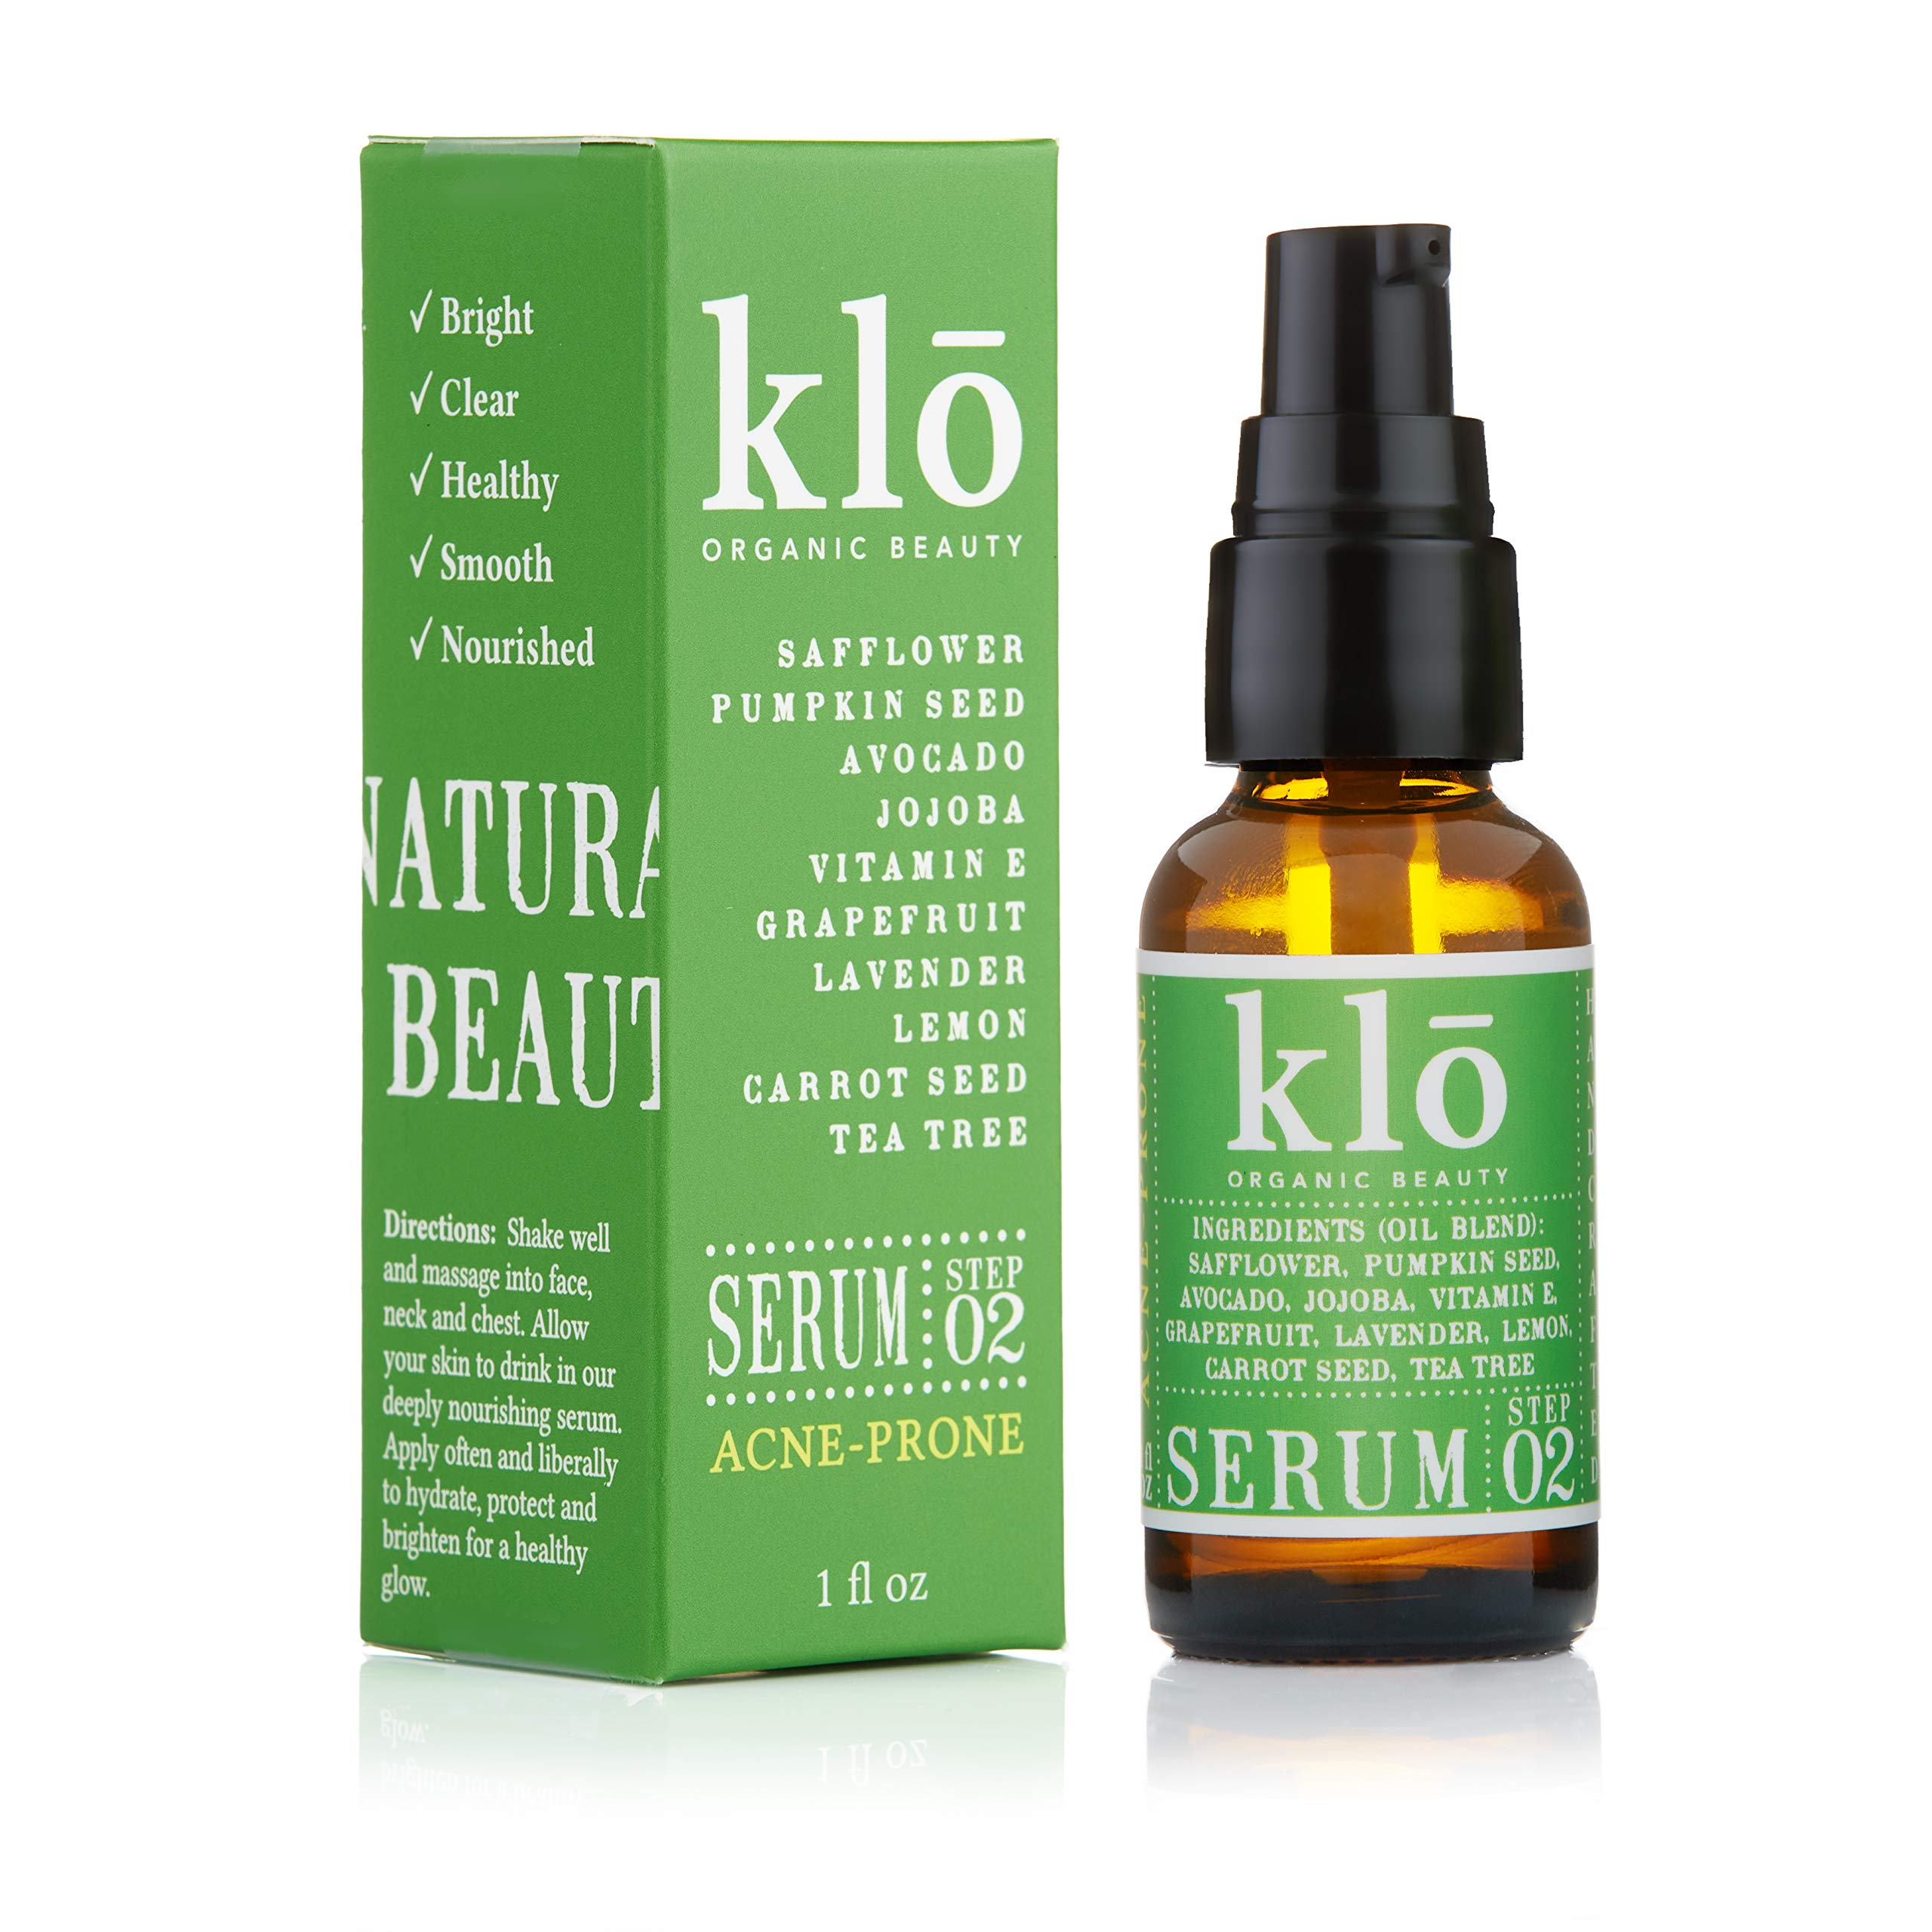 Klo Organic Beauty Serum for Acne-Prone Skin, Anti-Aging Serum, All-Natural Face Serum, Bright Clear Skin, Vitamin E, Lavender, Orange, Tea Tree Oil